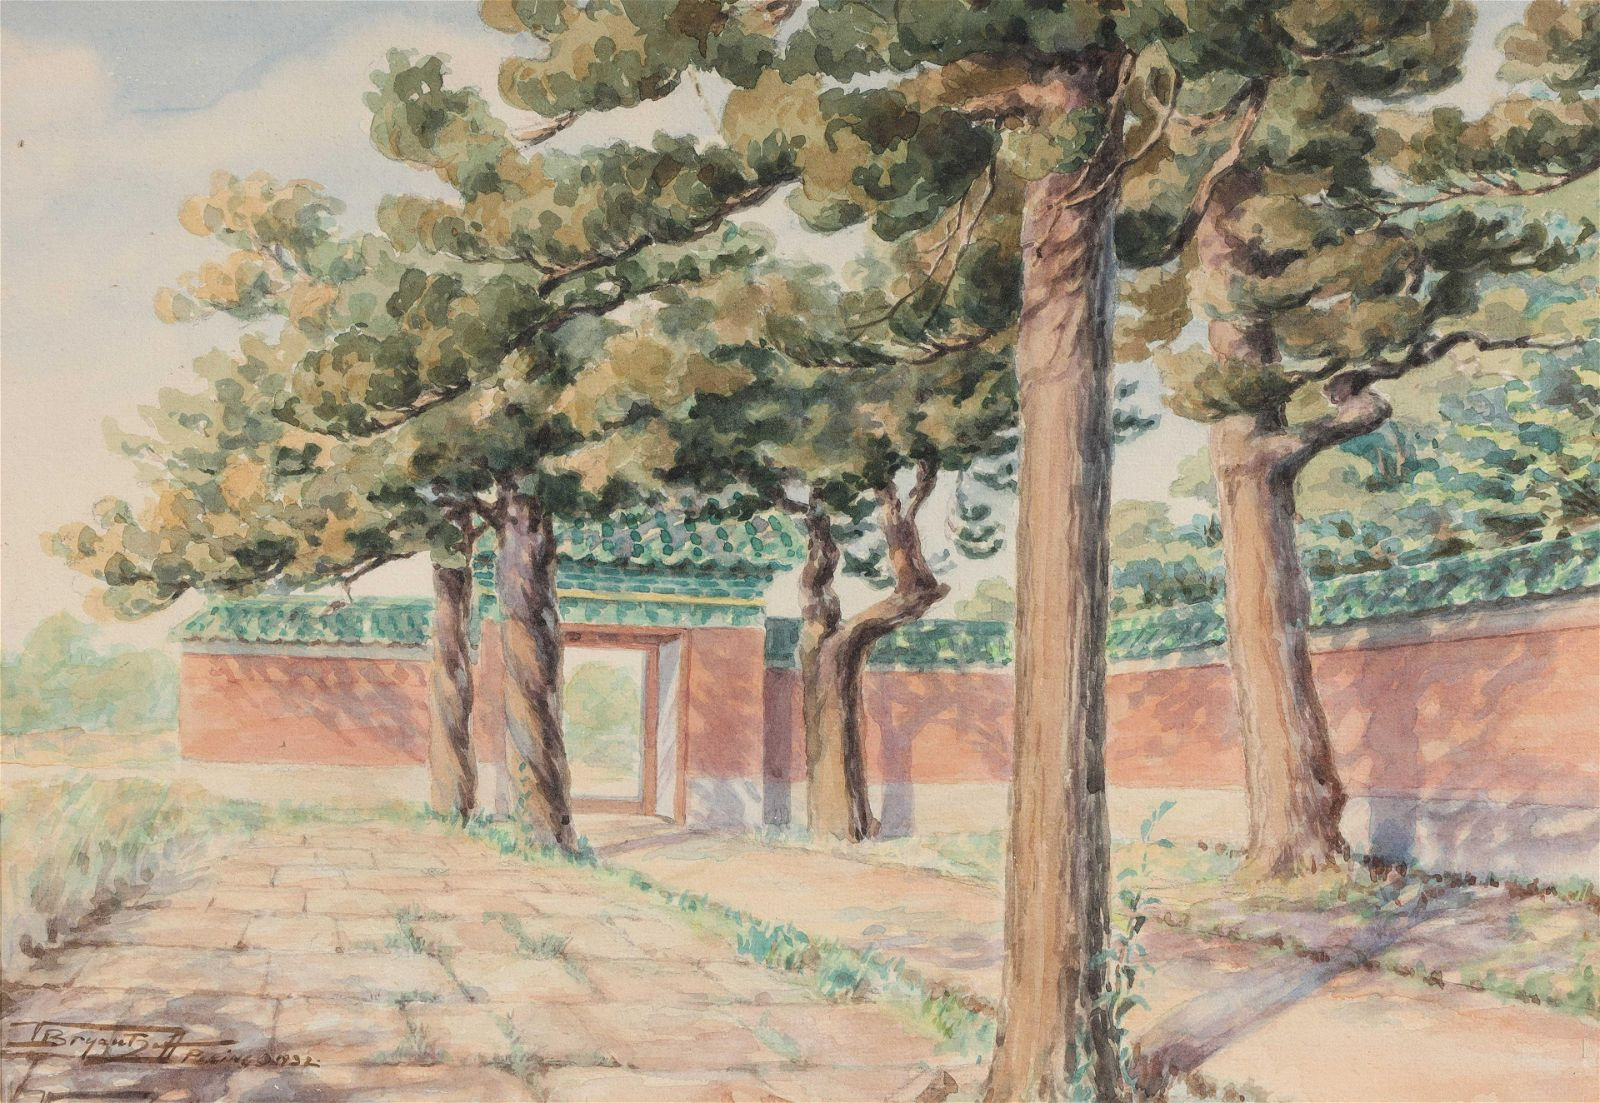 20th Century Chinese Scenic Watercolor Painting